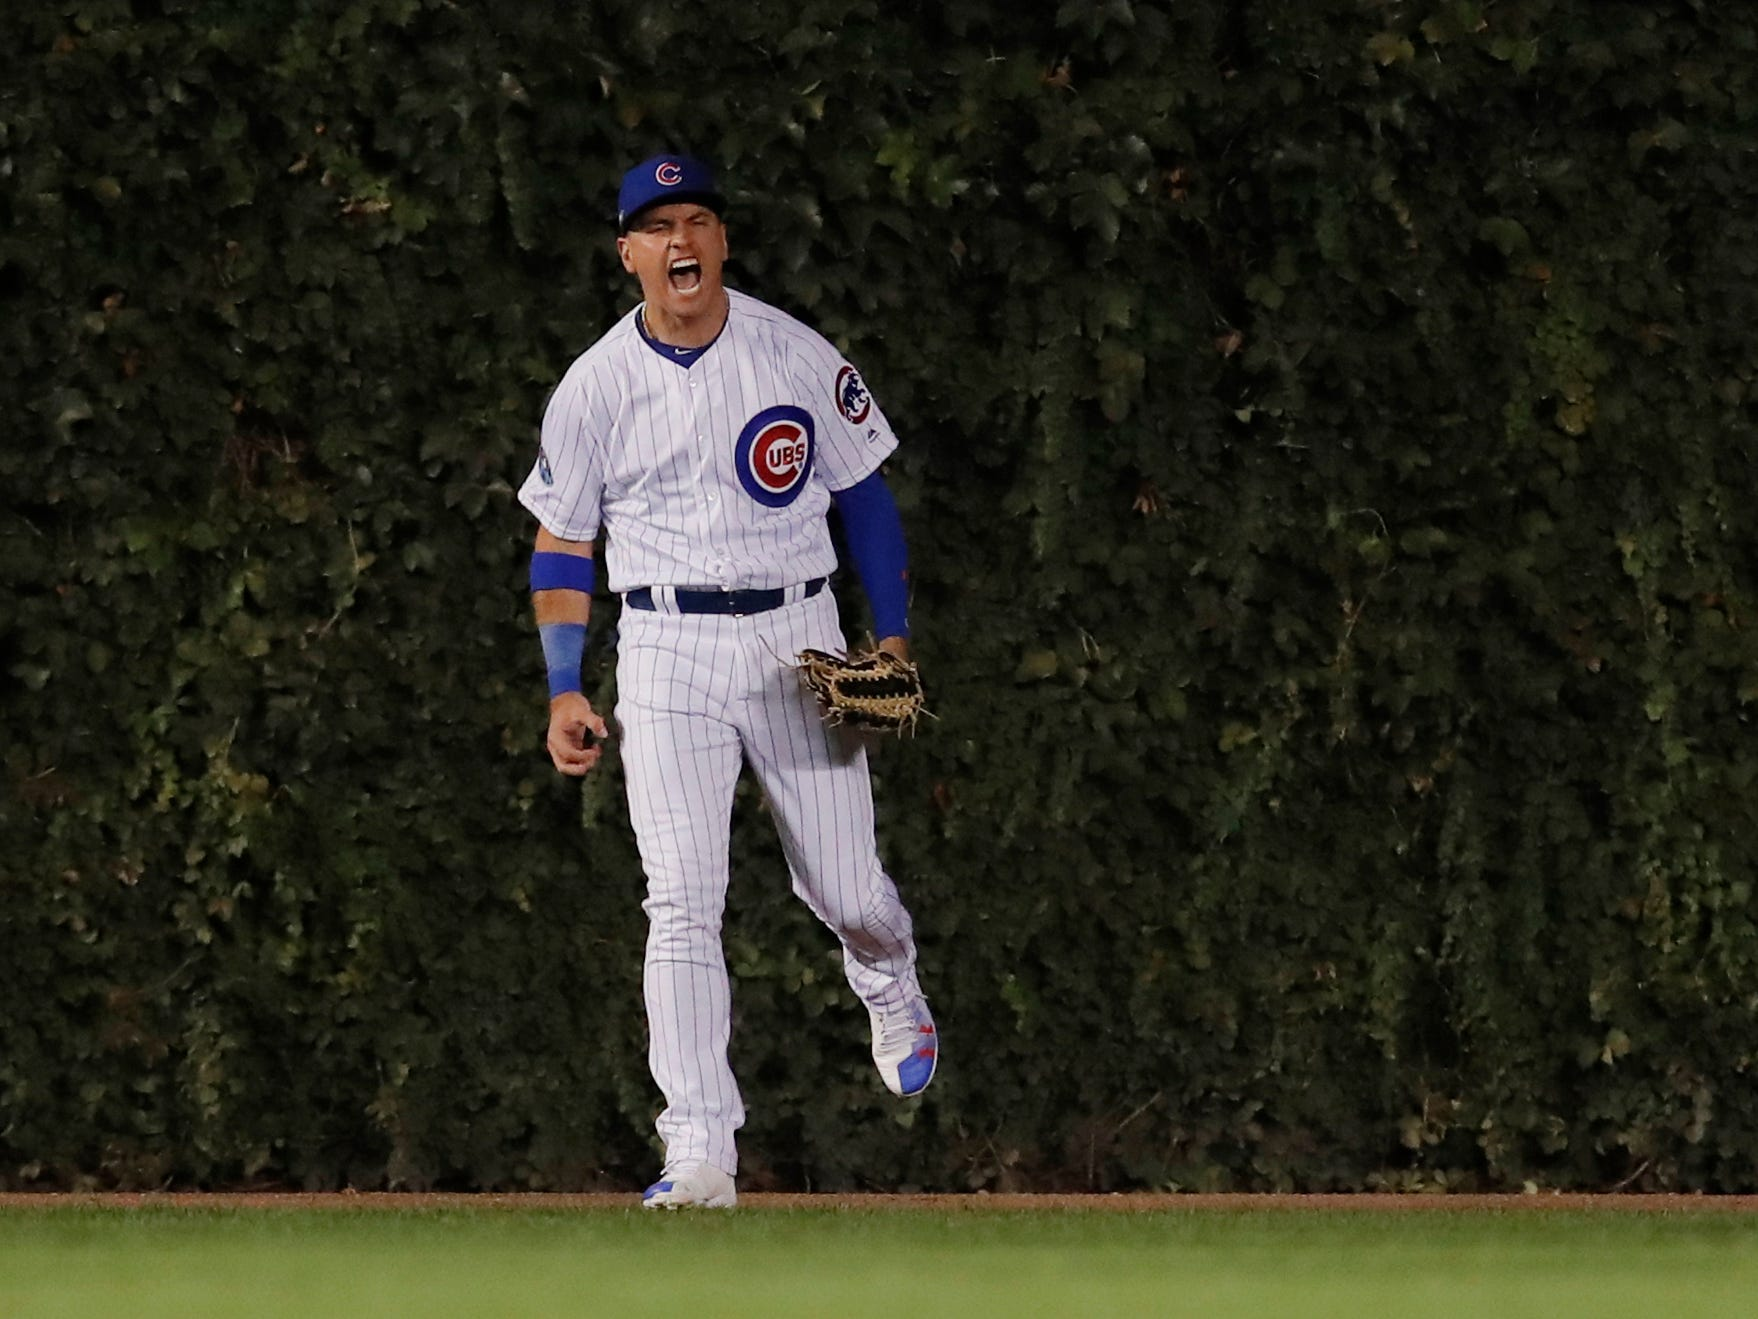 NL wild card: Cubs center fielder Albert Almora Jr. makes a catch up against the ivy hit by Rockies' David Dahl.